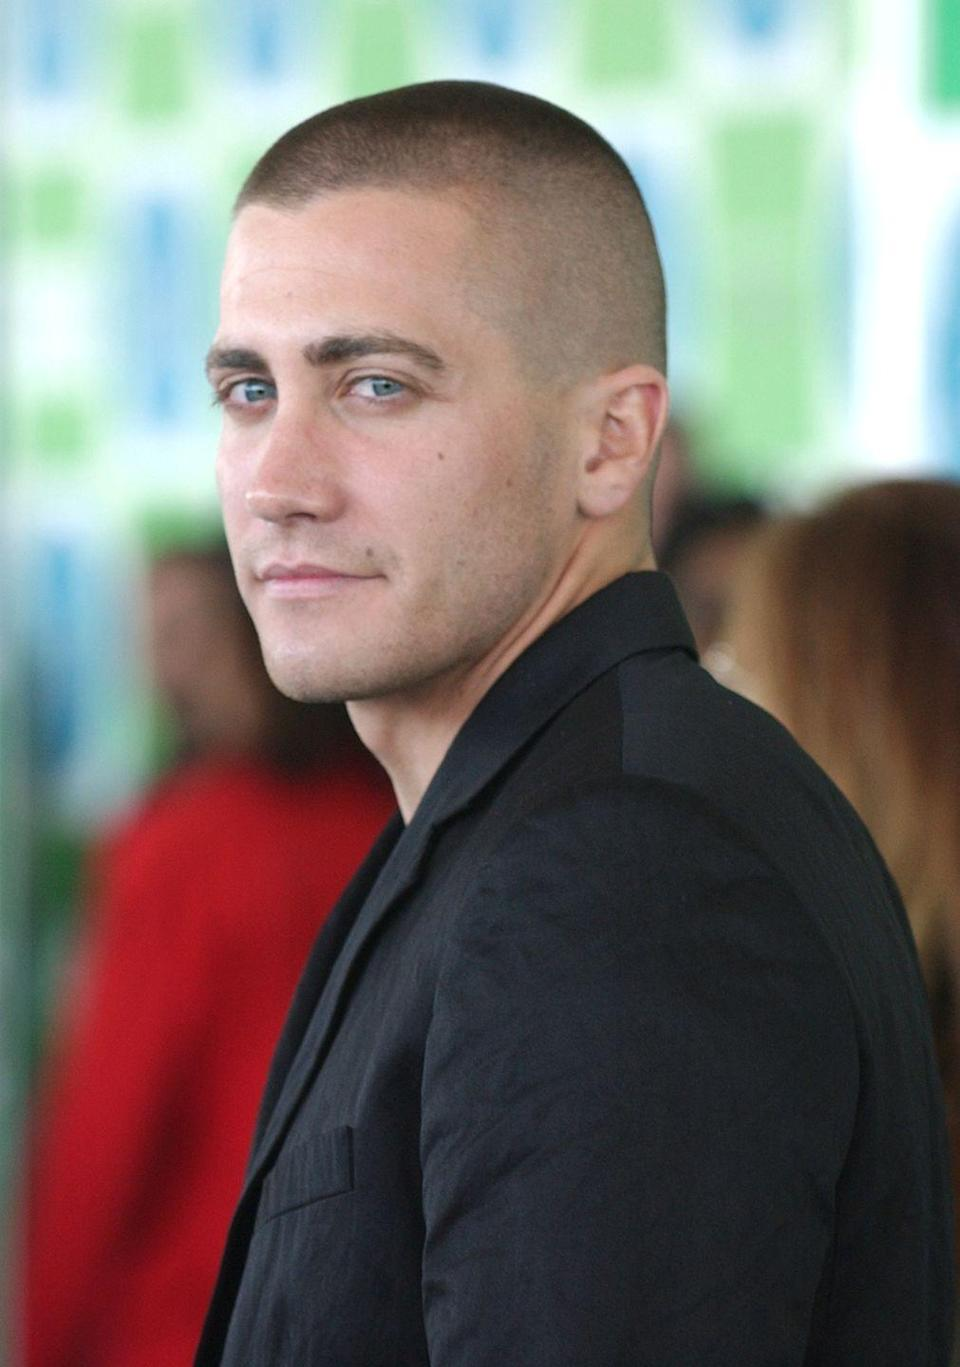 <p>Who can forget Jake Gyllenhaal's buzzcut phase in 2005? Not us. But the actor didn't try out the hairstyle just for kicks — it was for his role as a solider in <em>Jarhead</em>. </p>